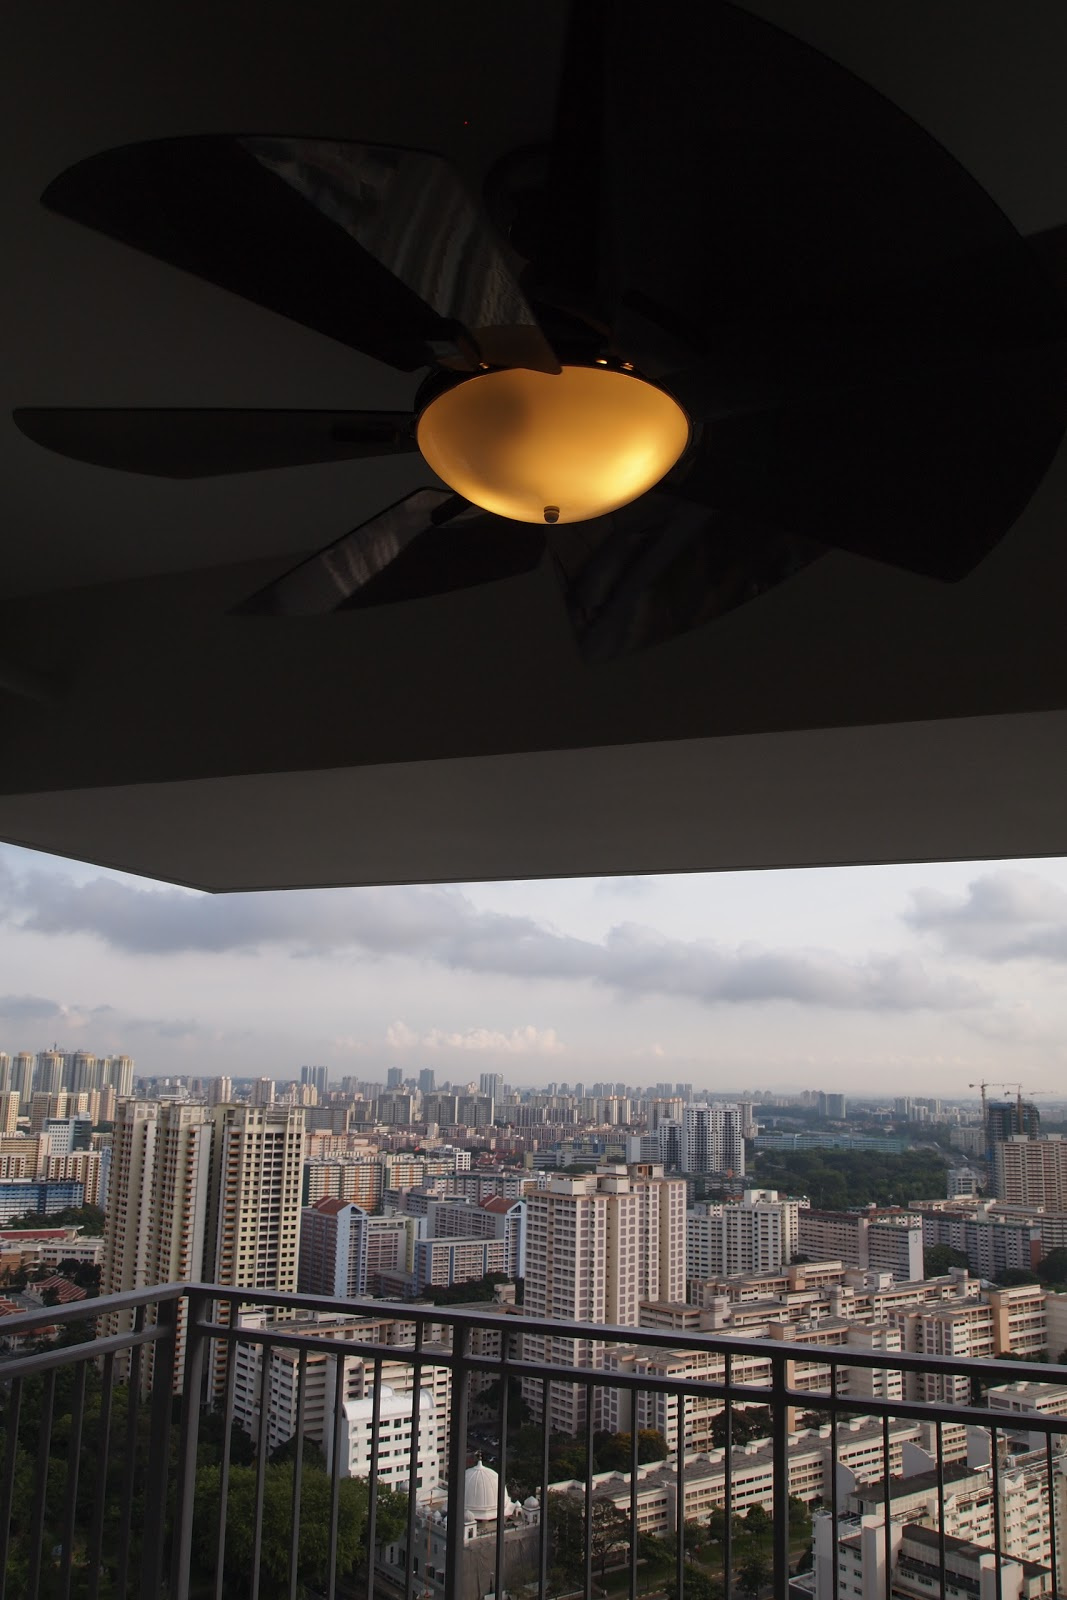 How Much Does a Ceiling Fan Cost? Free Ceiling Fan Prices and